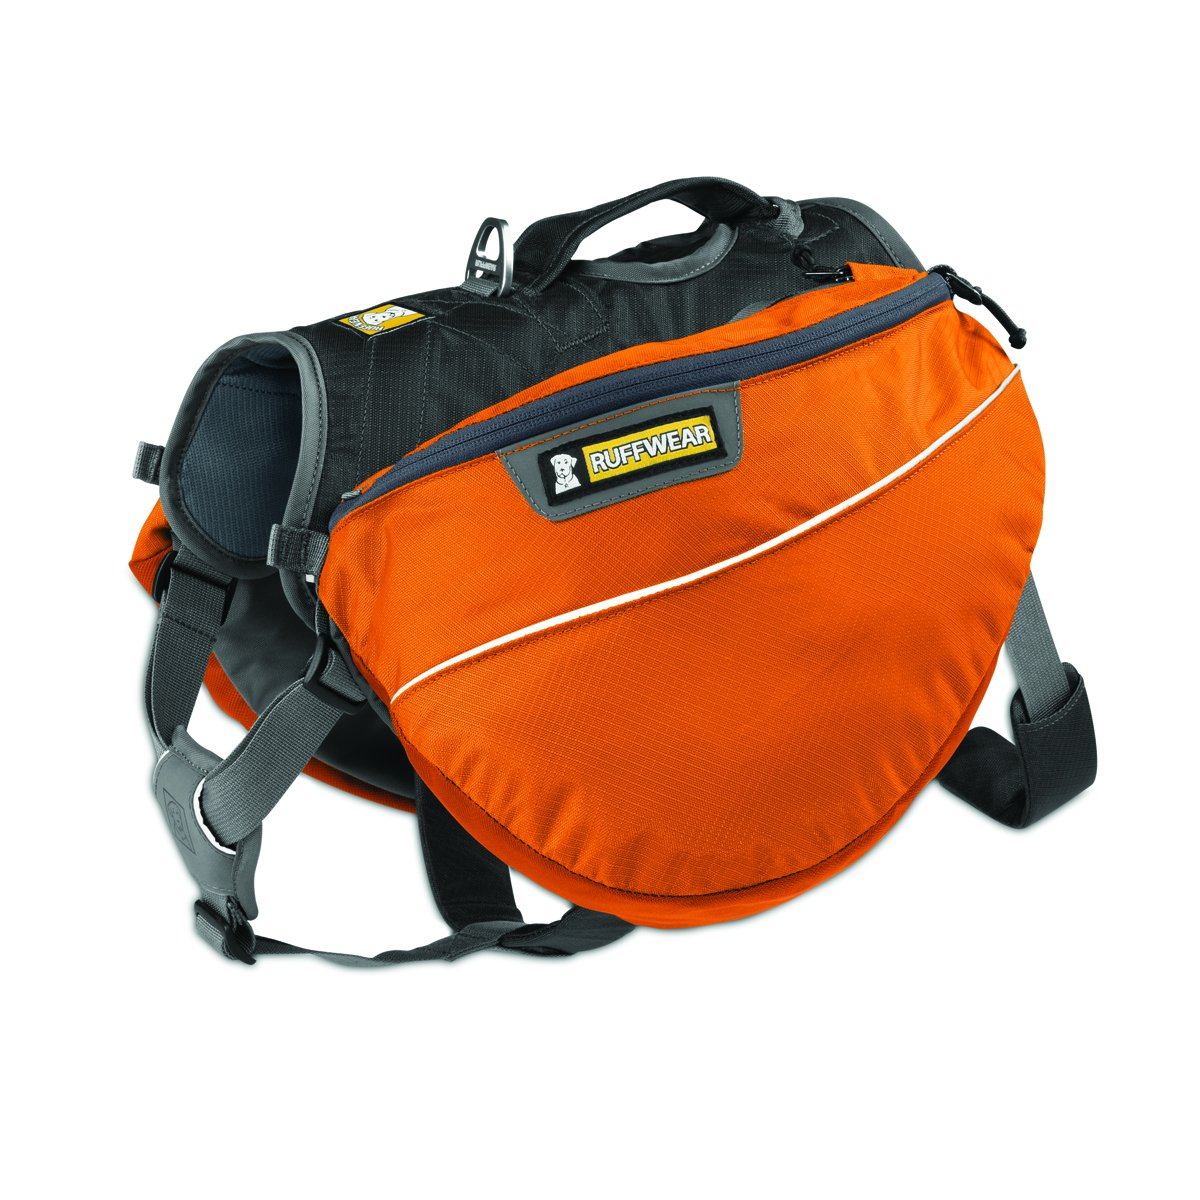 Ruffwear - Approach Full-Day Hiking Pack for Dogs, Campfire Orange, Small